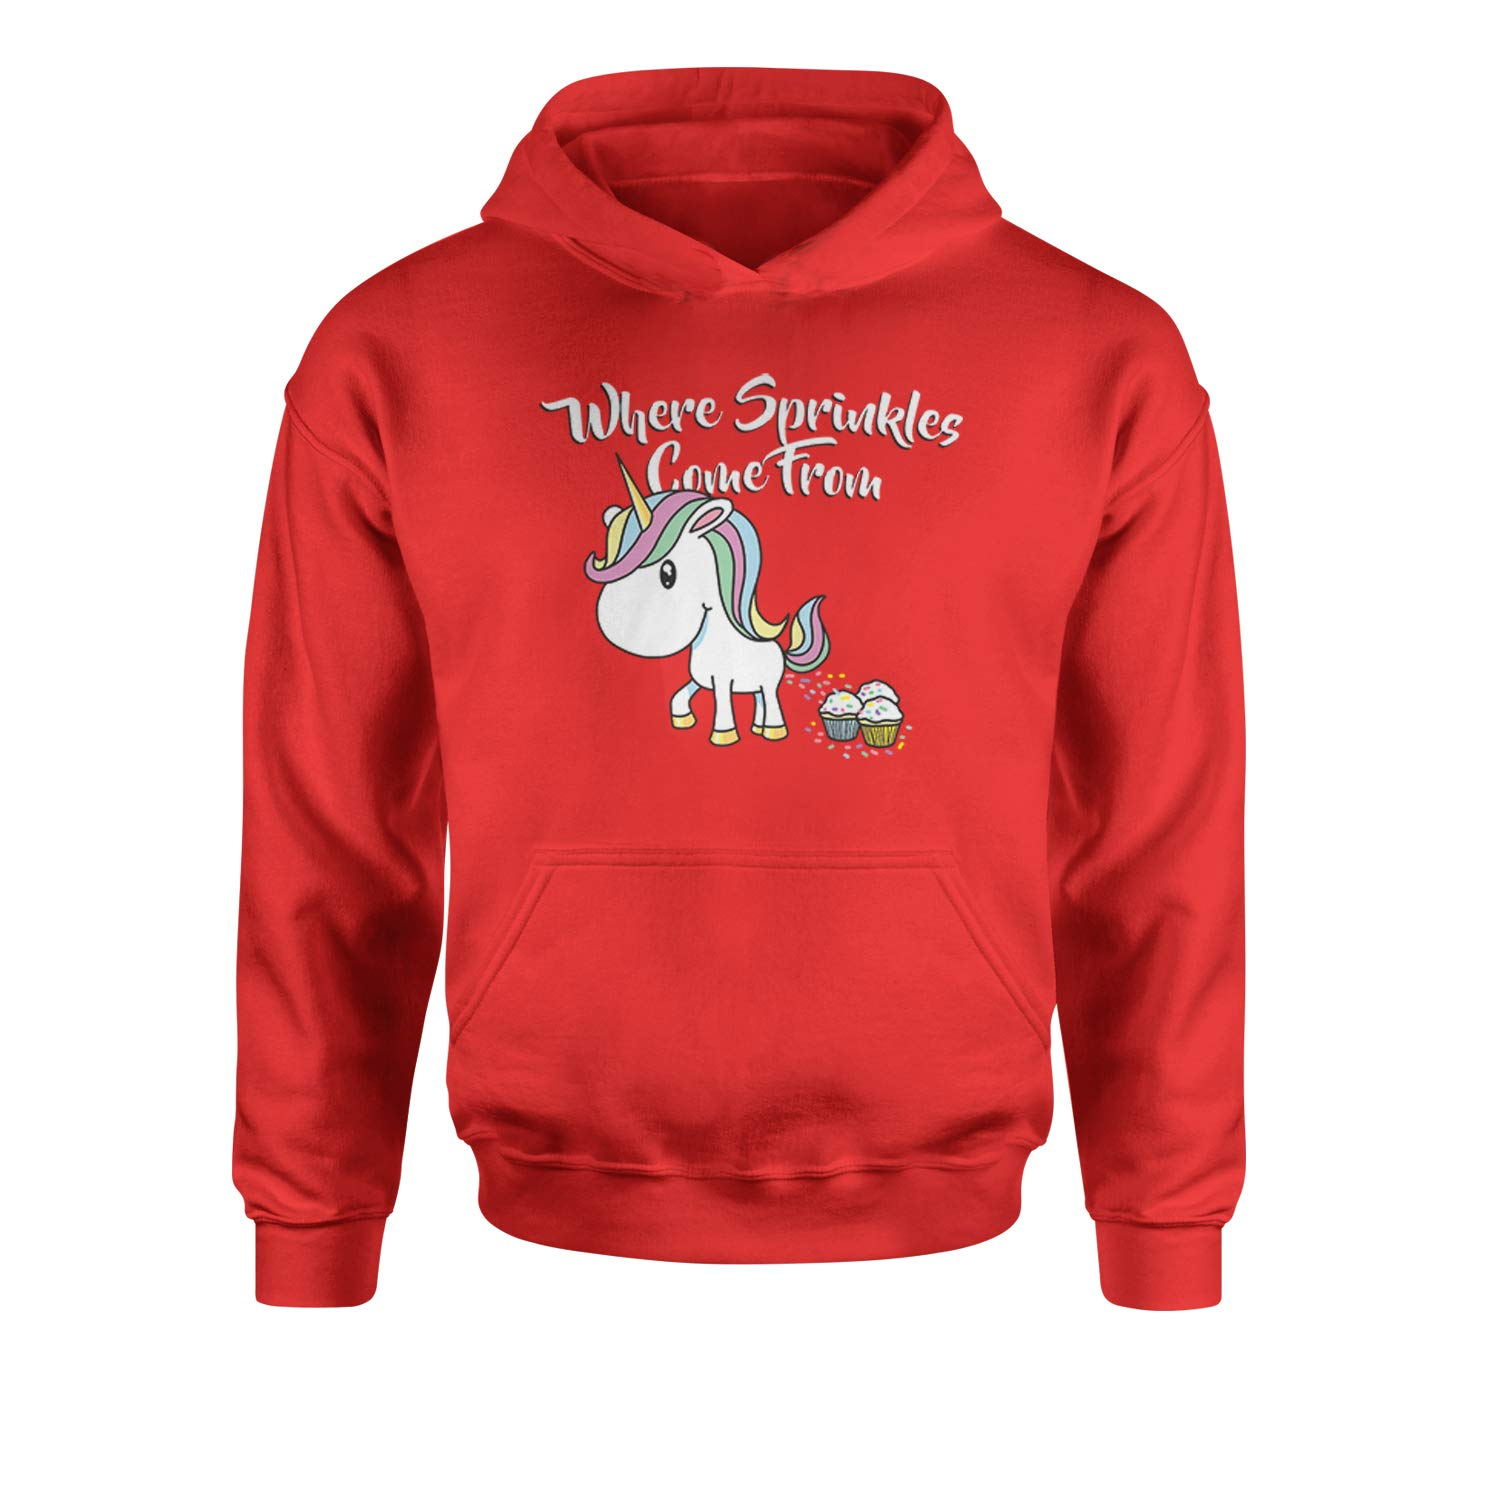 Expression Tees Unicorns are Where Sprinkles Come from Youth-Sized Hoodie